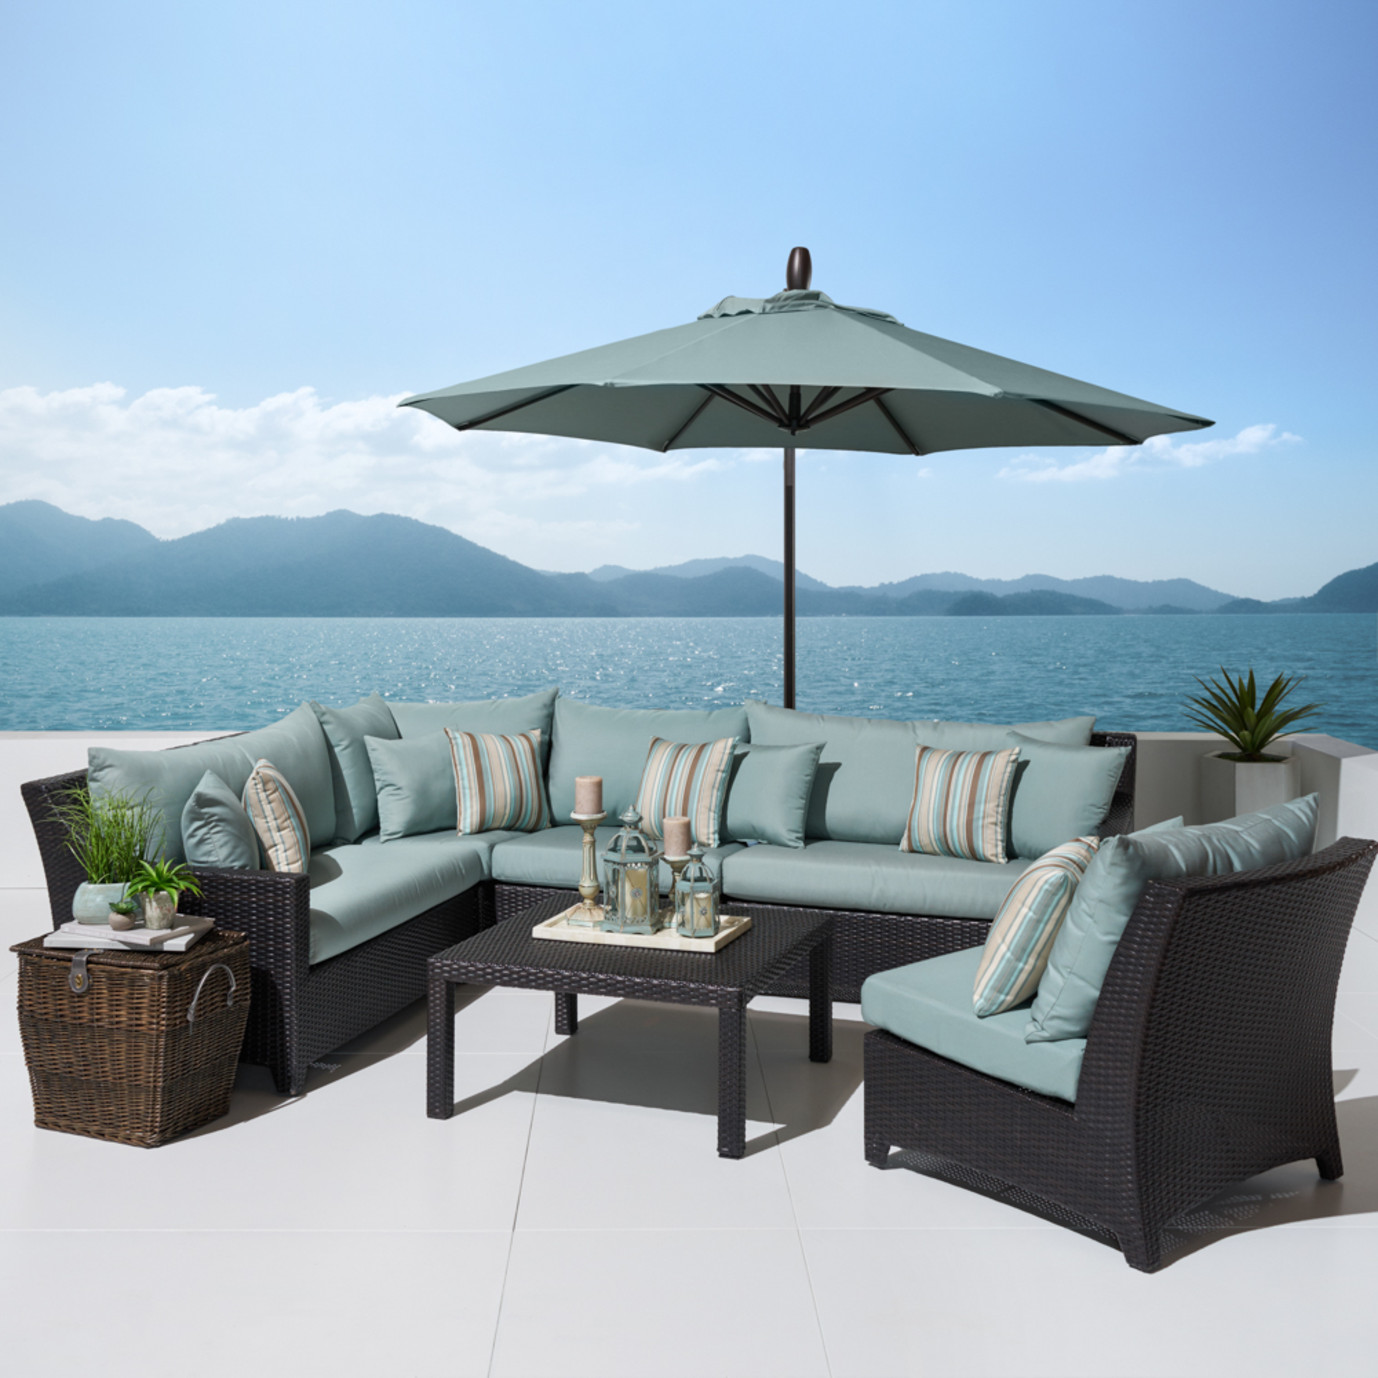 Deco™ 6pc Sectional and Table with Umbrella - Bliss Blue